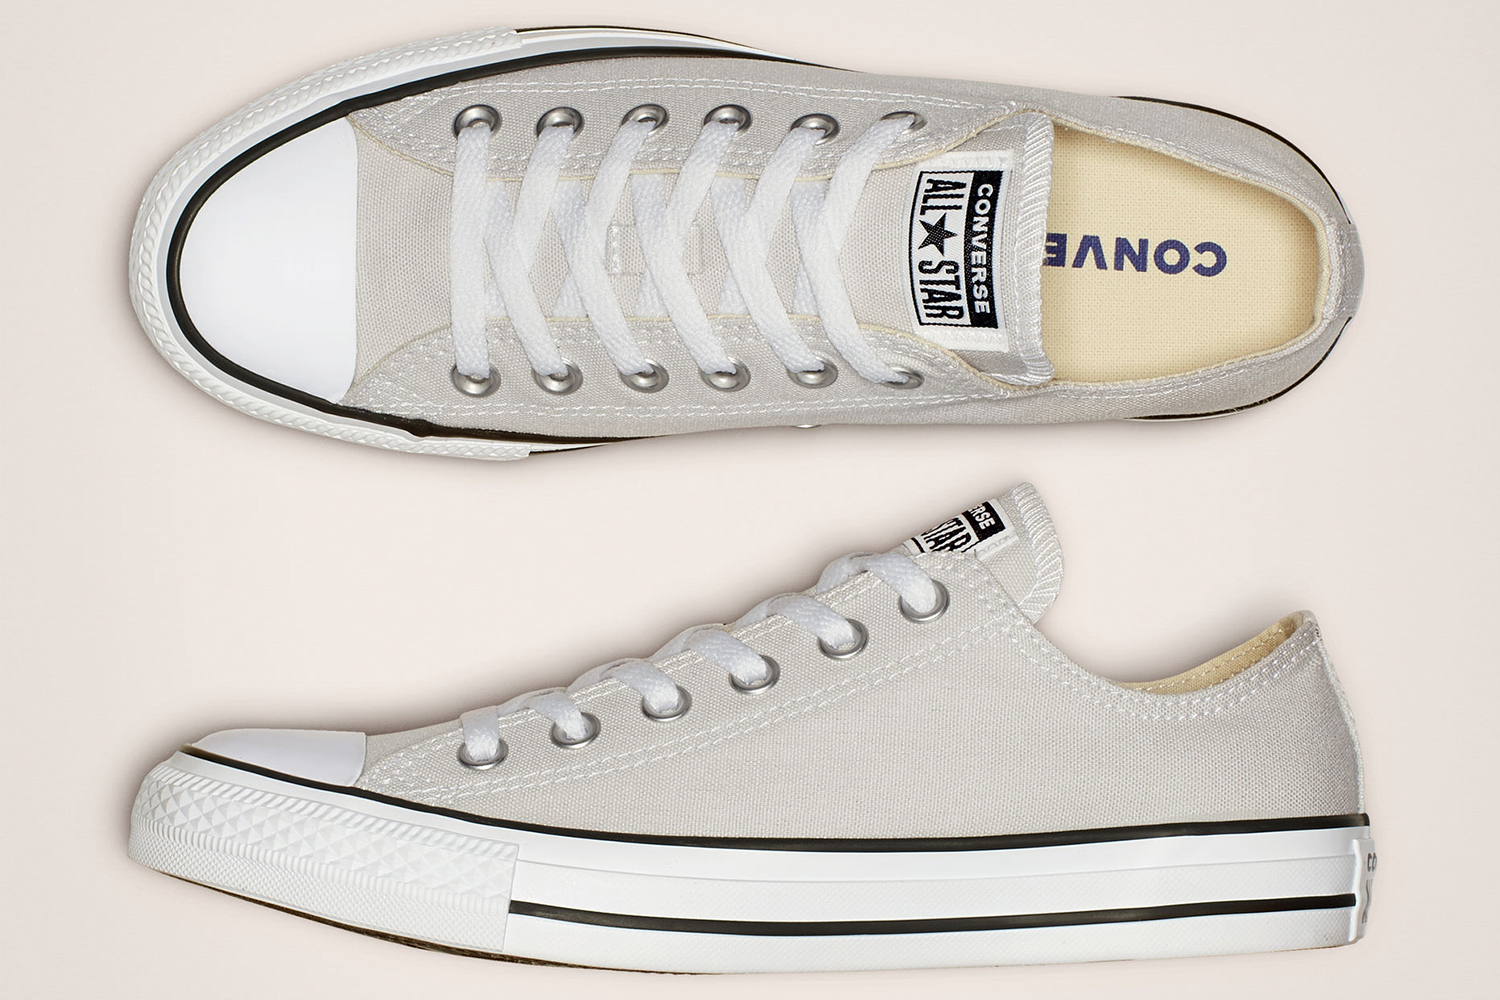 Classic Converse Sneakers Under $30? Say No More. InsideHook